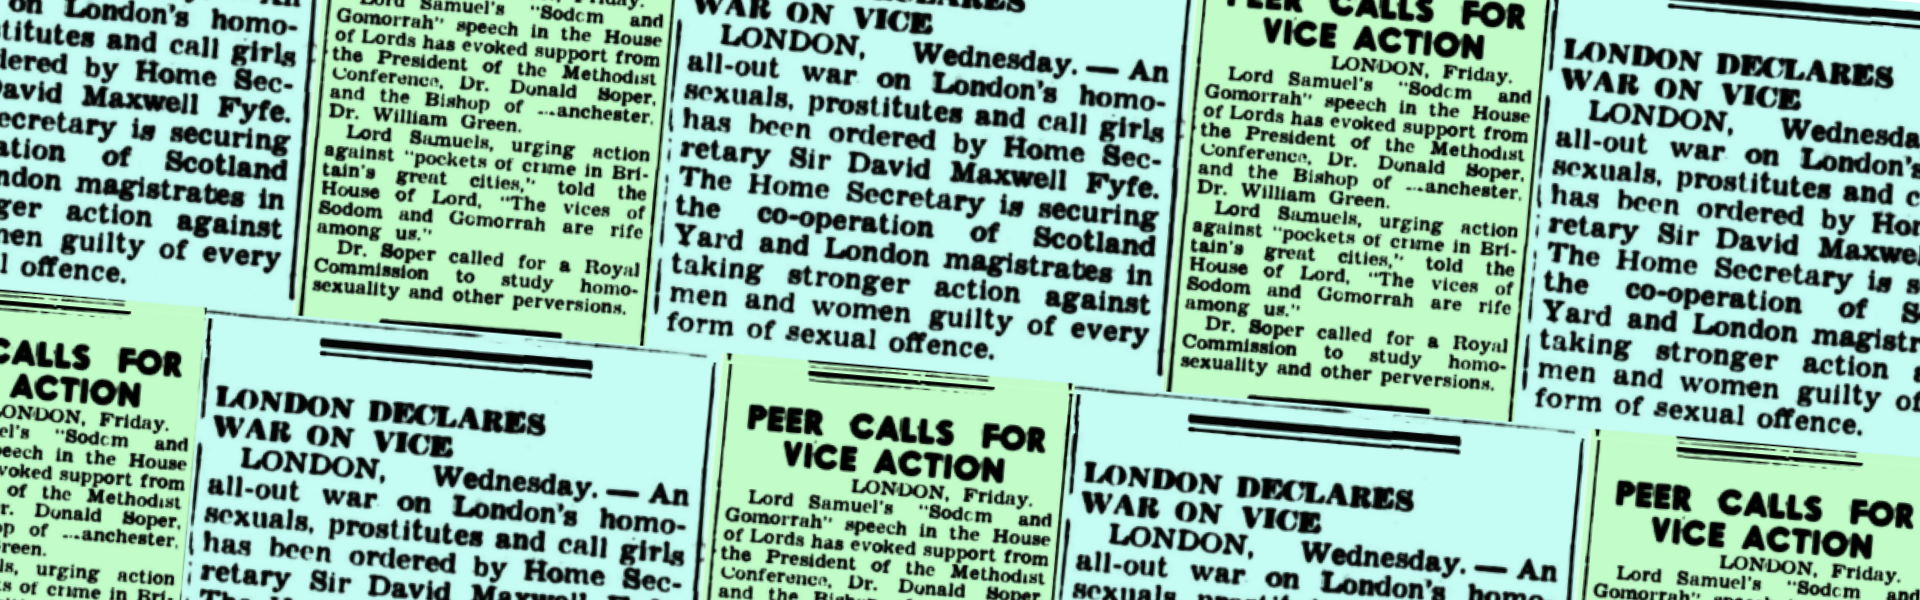 London declares war on vice, The Canberra Times (Canberra, ACT), 29 October 1953 and Peer calls for vice action, The Canberra Times (Canberra, ACT), 7 November 1953, p2, Newspaper clipping collection